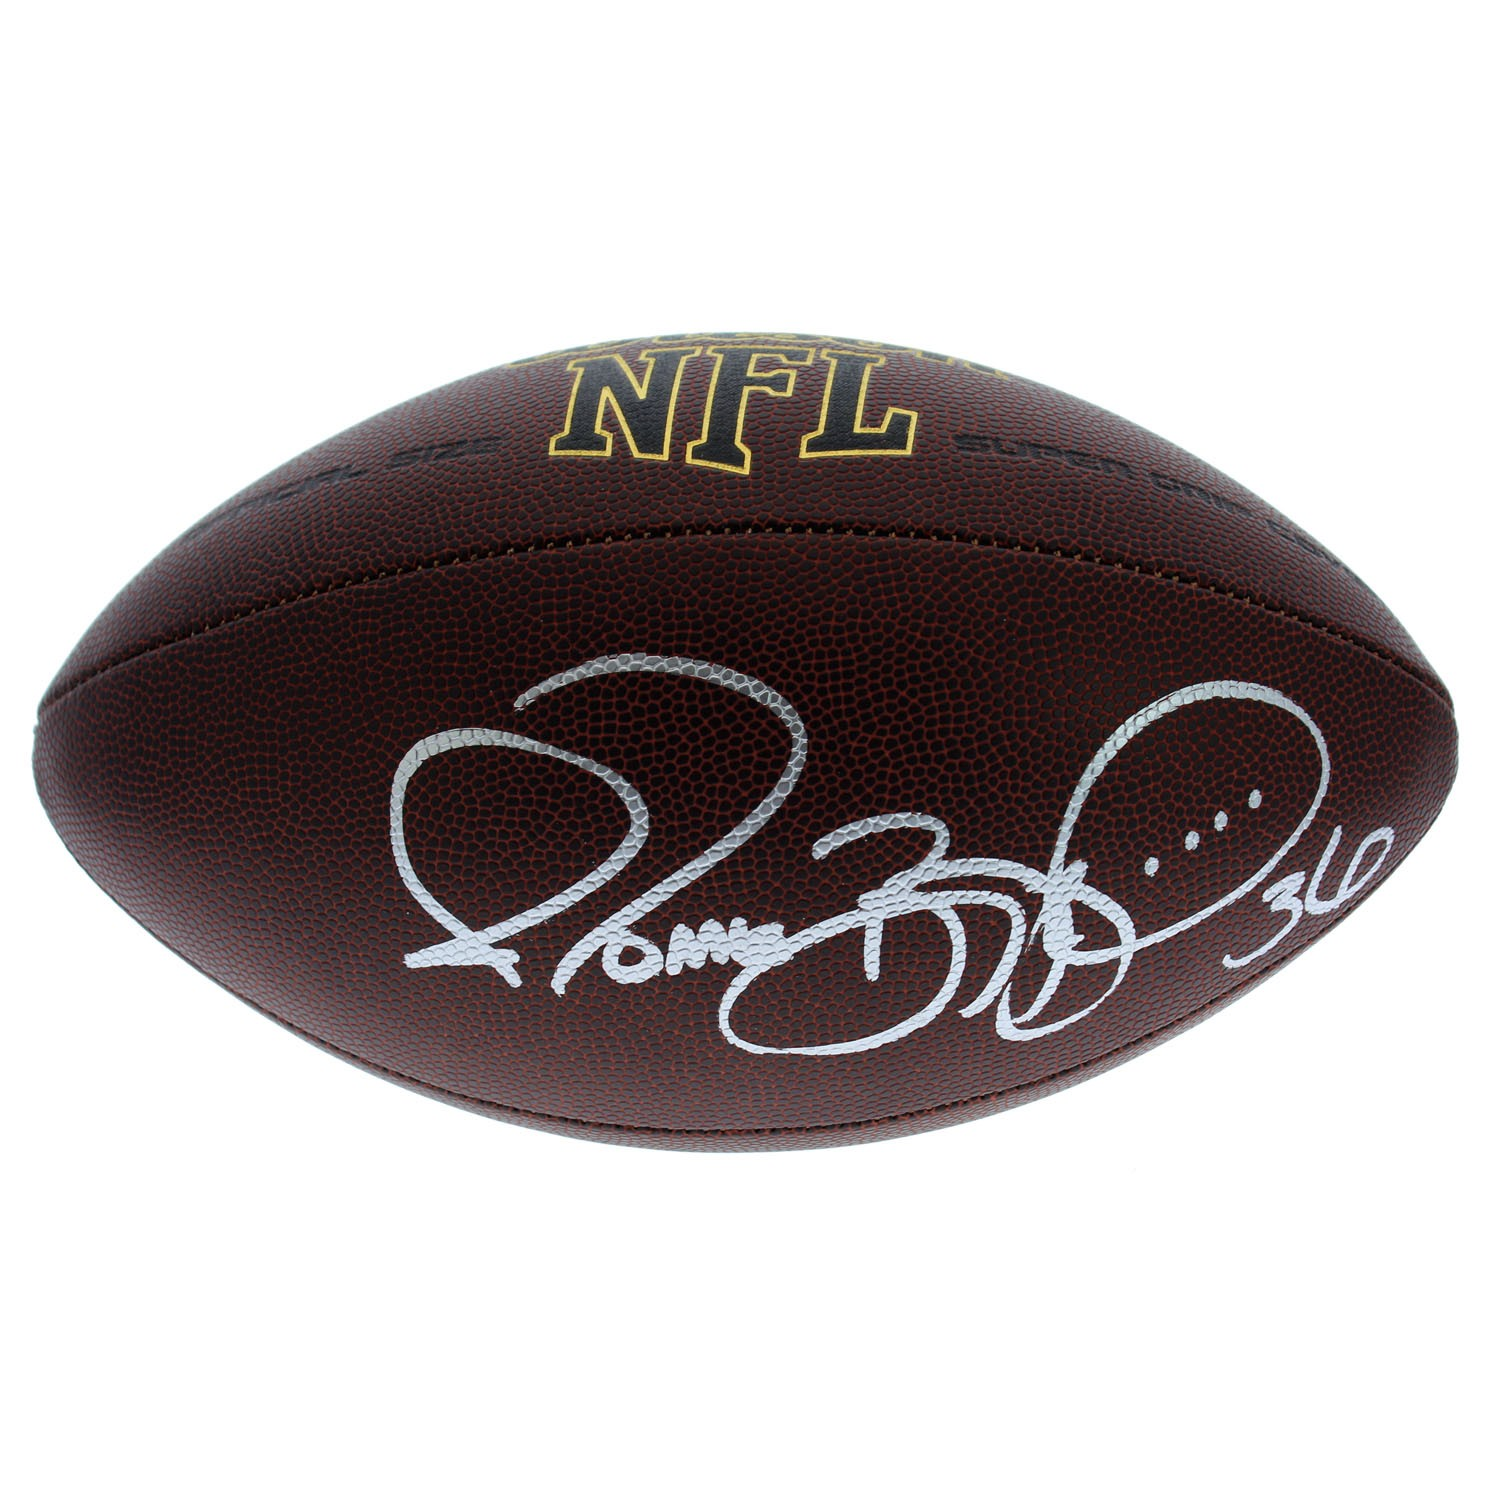 1f06478f8 Jerome Bettis Autographed Signed NFL Supergrip Football - PSA DNA Certified  Authentic